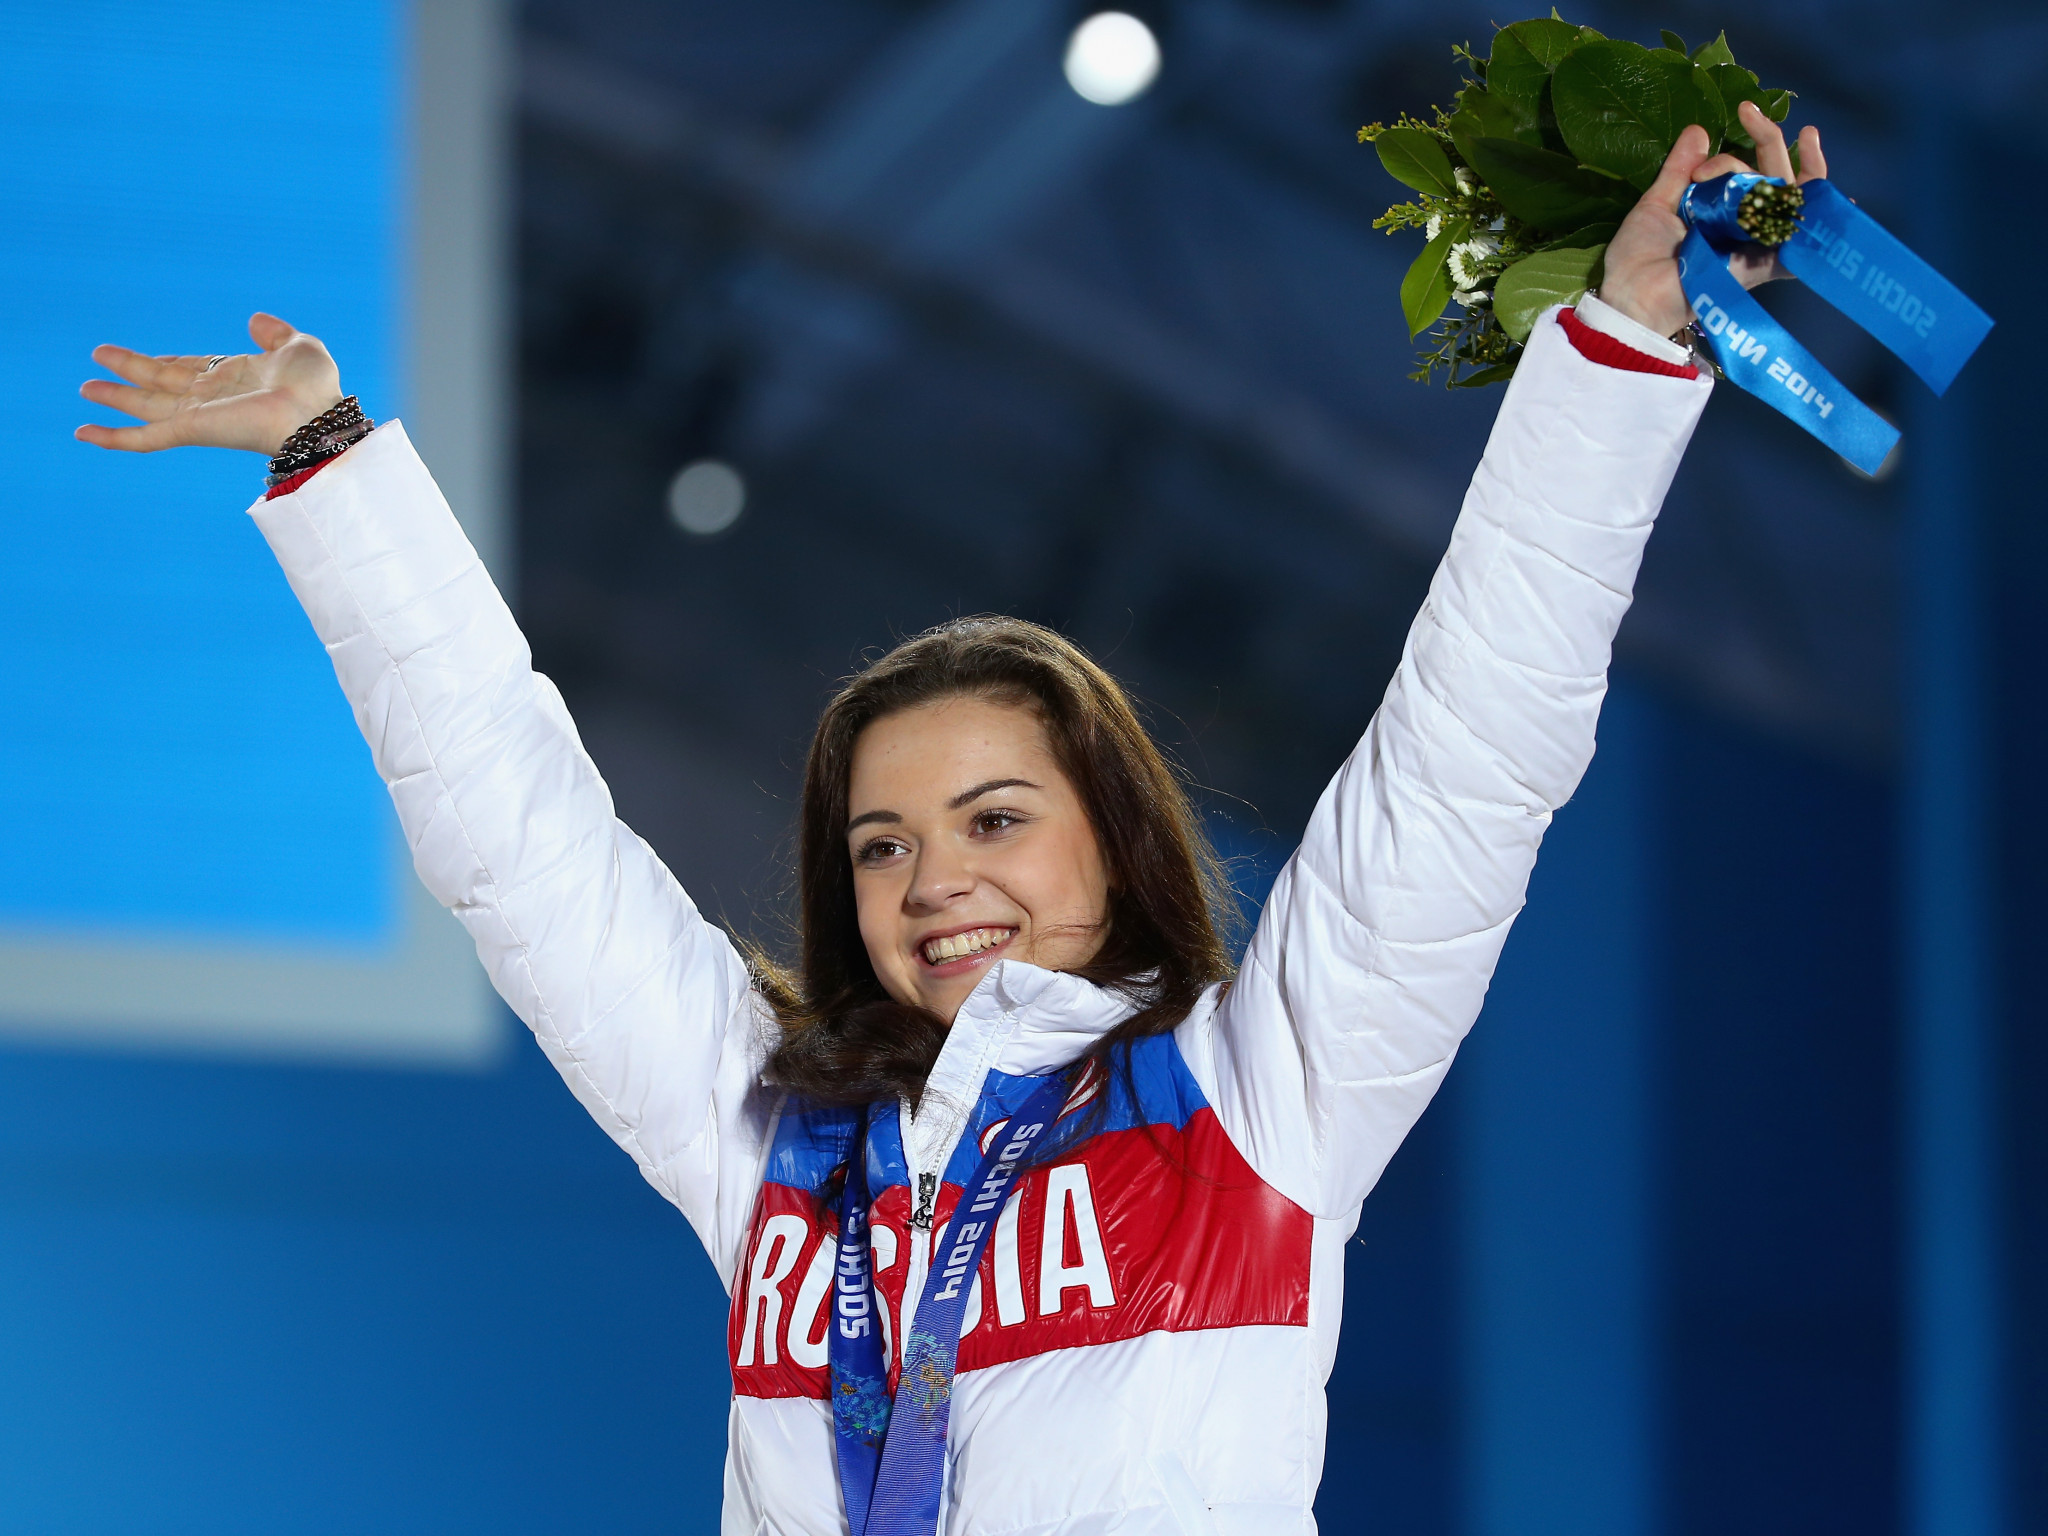 Adelina Sotnikova earned gold for Russia at the Sochi 2014 Winter Olympic Games, although her victory was somewhat controversial ©Getty Images